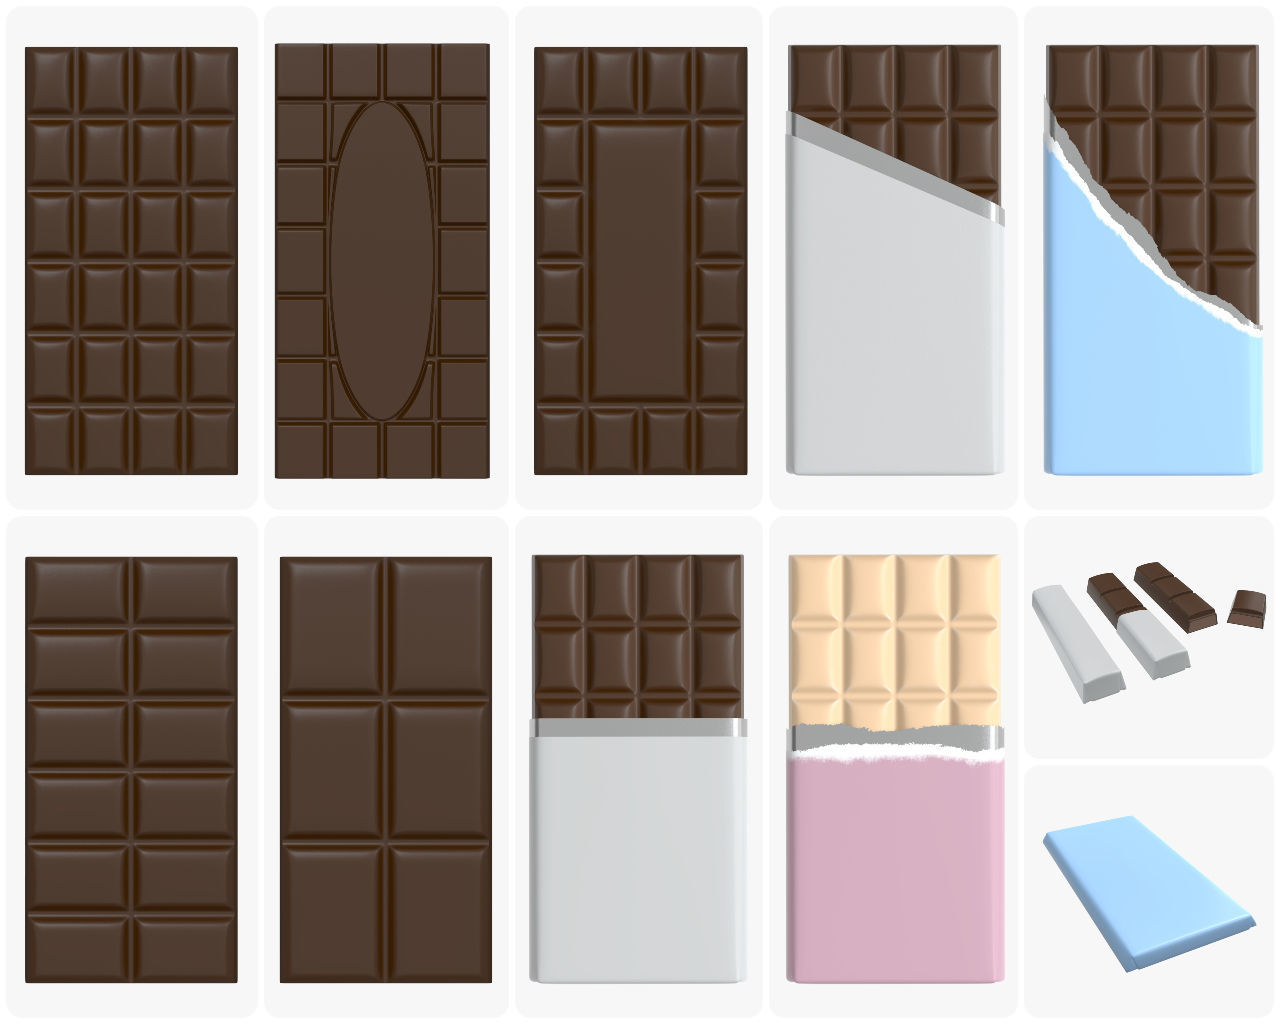 Chocolate bar packaging brown white mock up